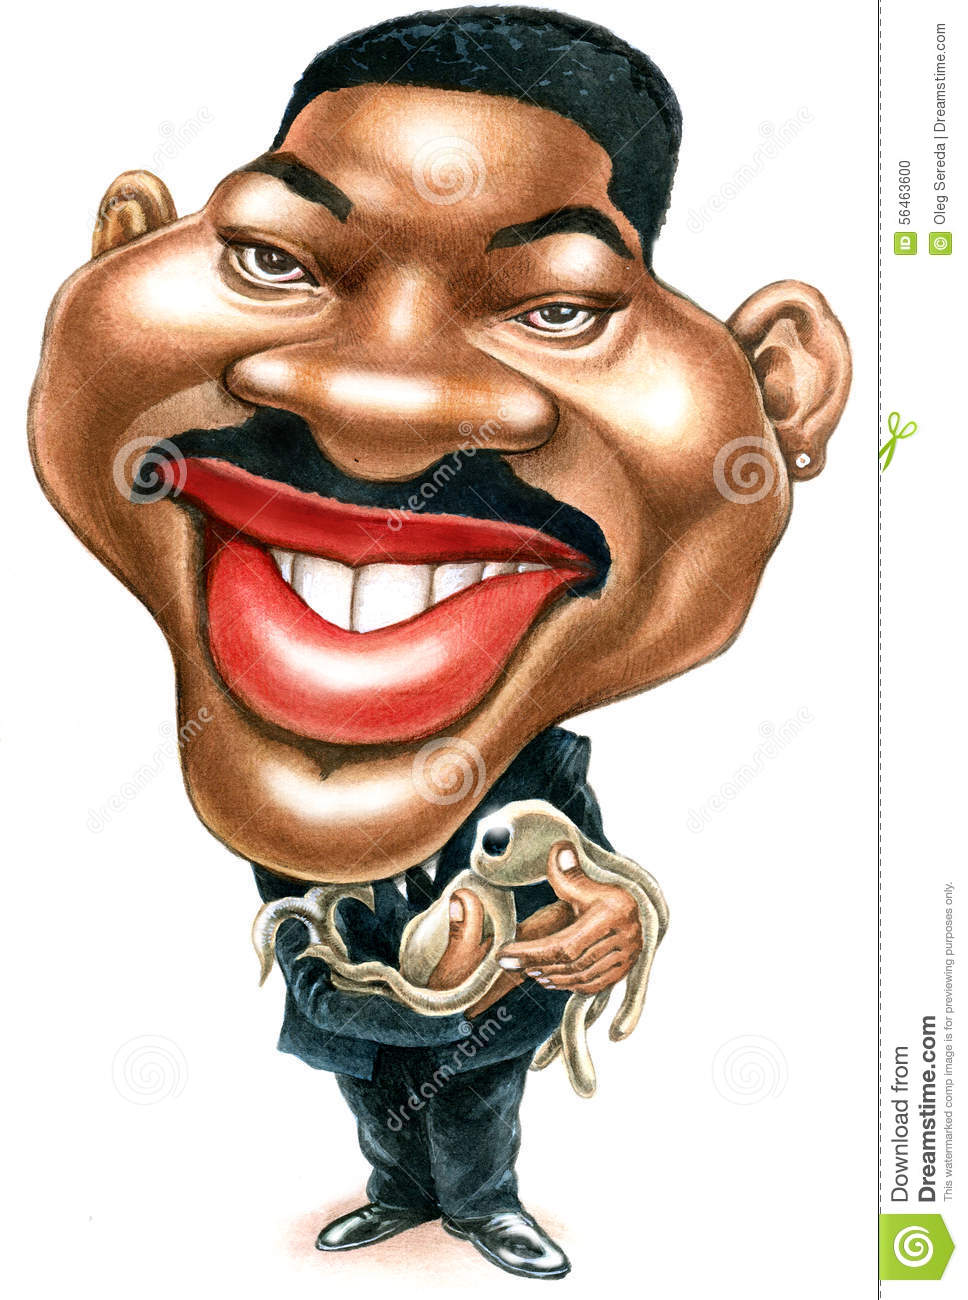 Will Smith Stock Illustrations u2013 7 Will Smith Stock Illustrations, Vectors  u0026 Clipart - Dreamstime